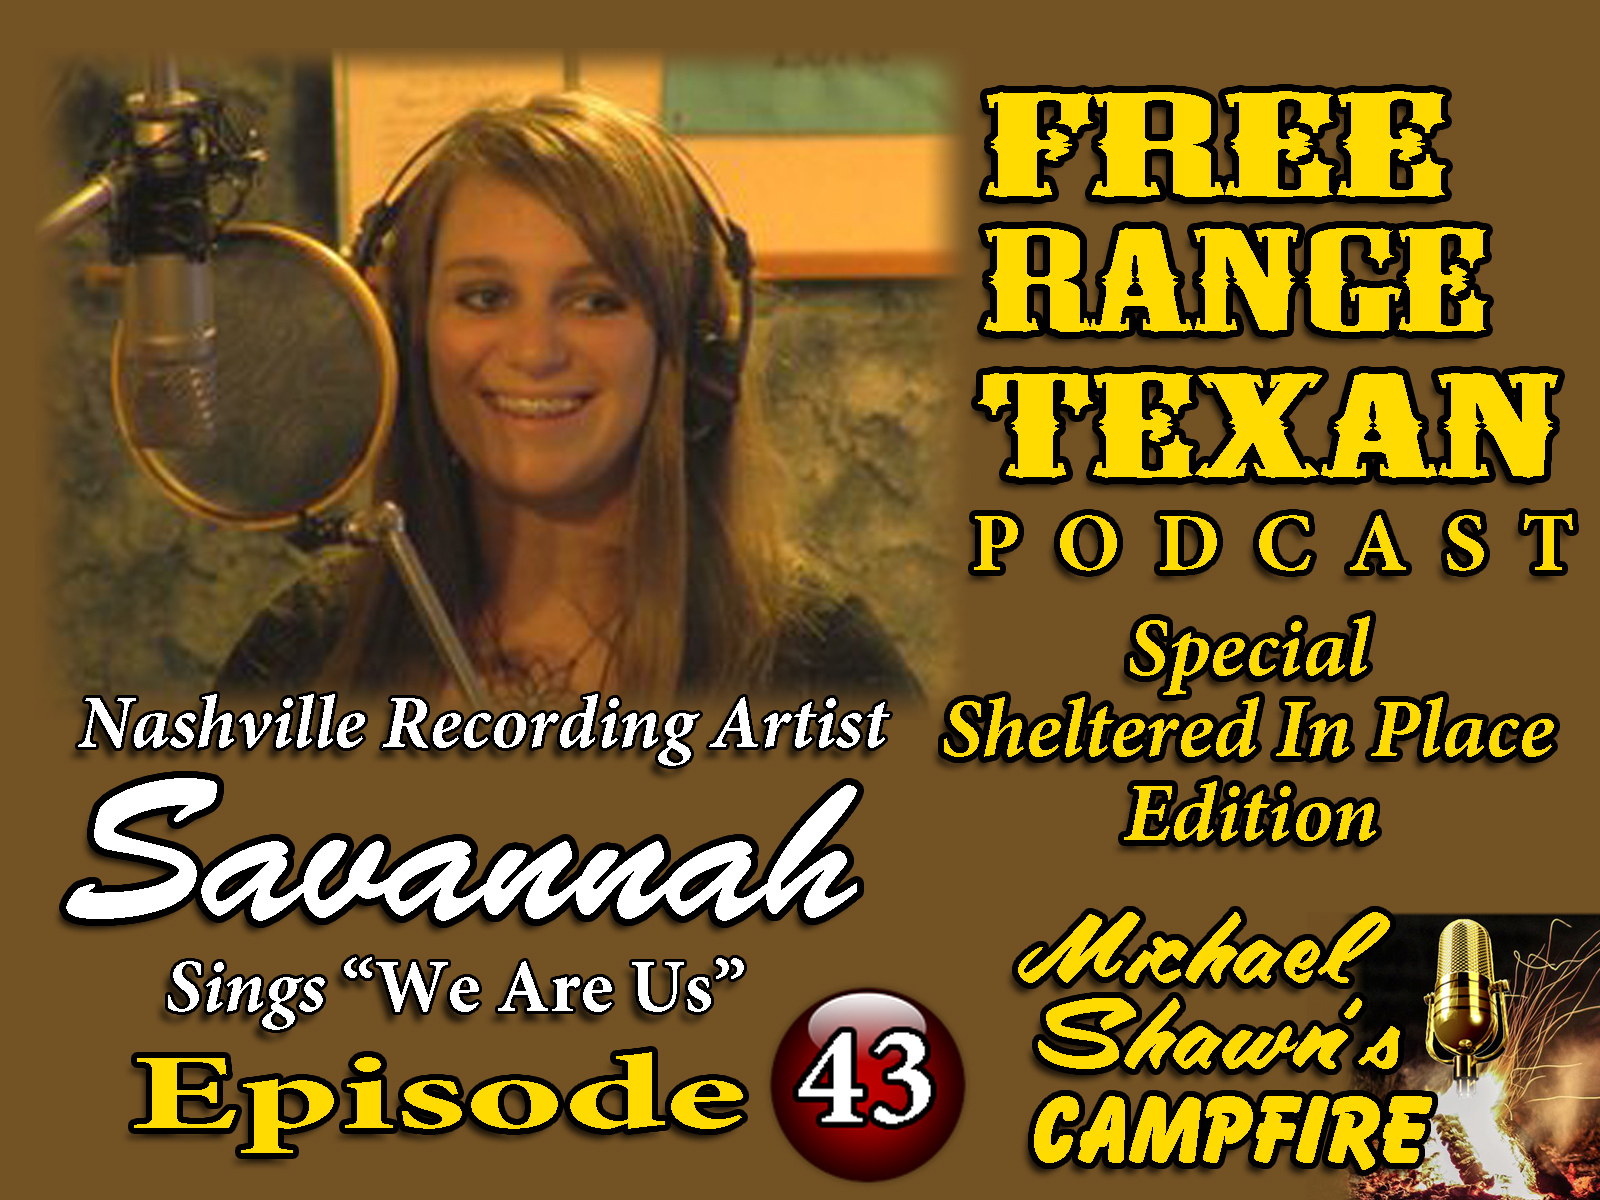 Free Range Texan Episode 43